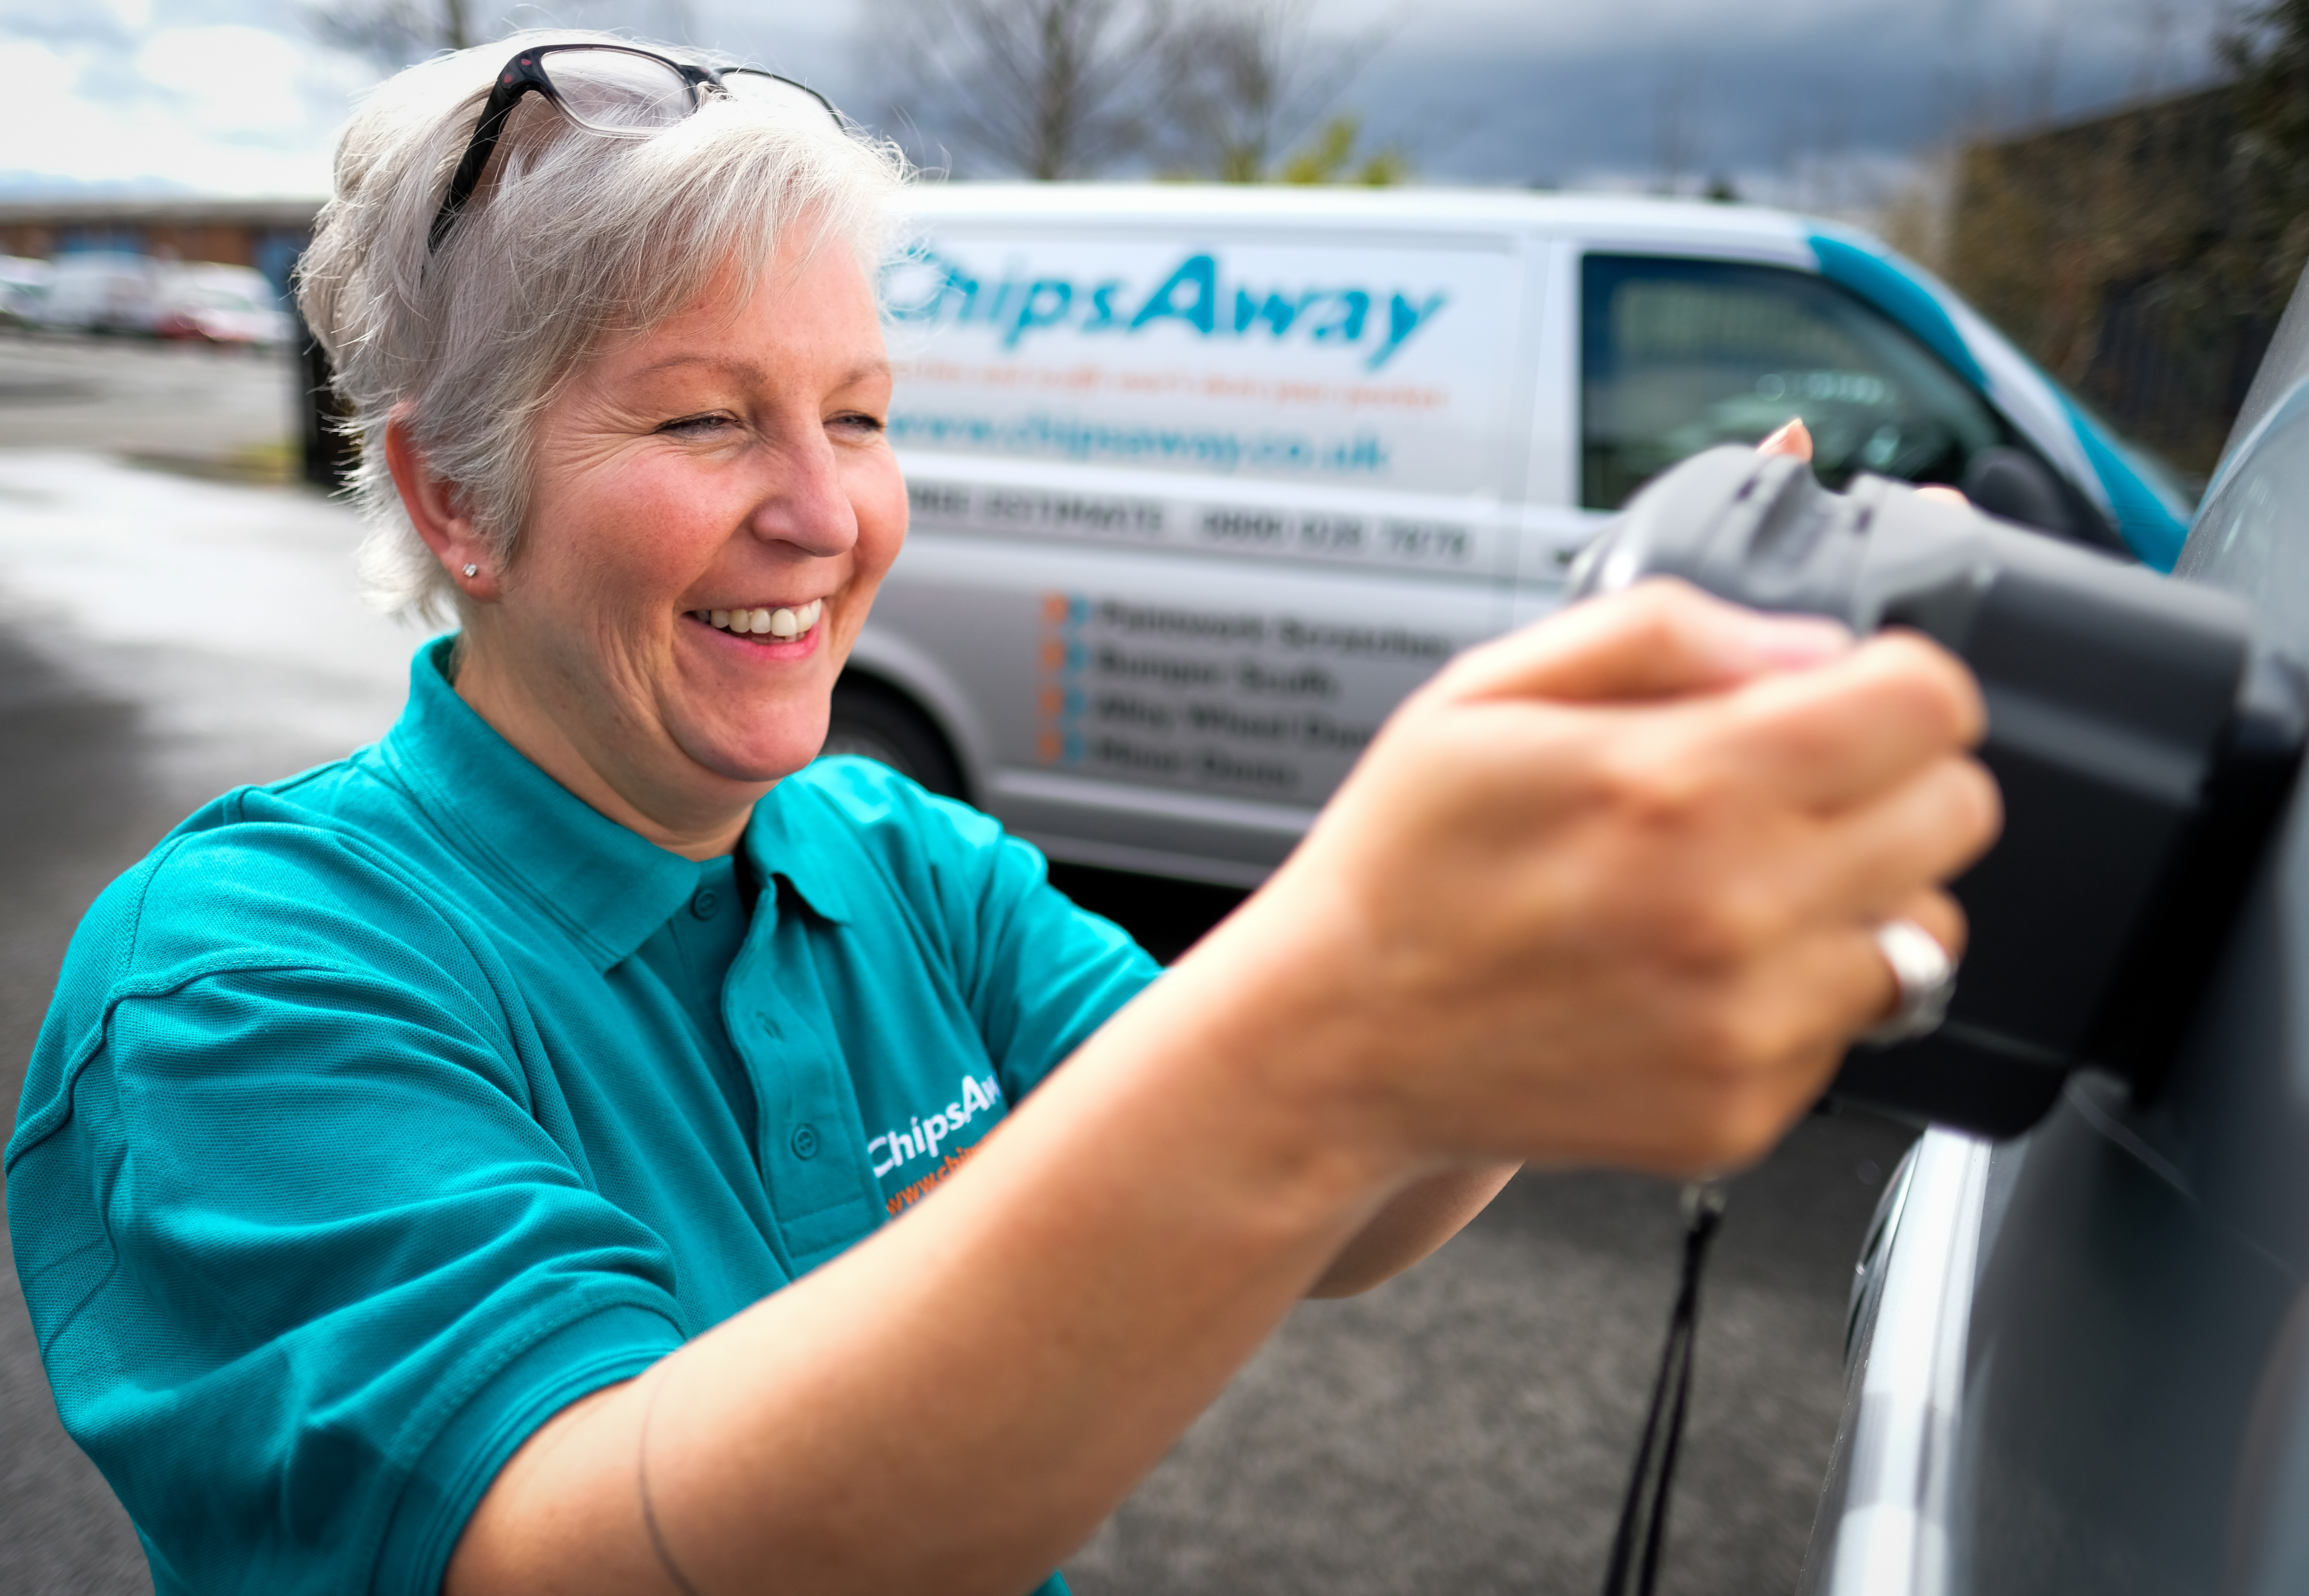 lady chipsaway repair specialist